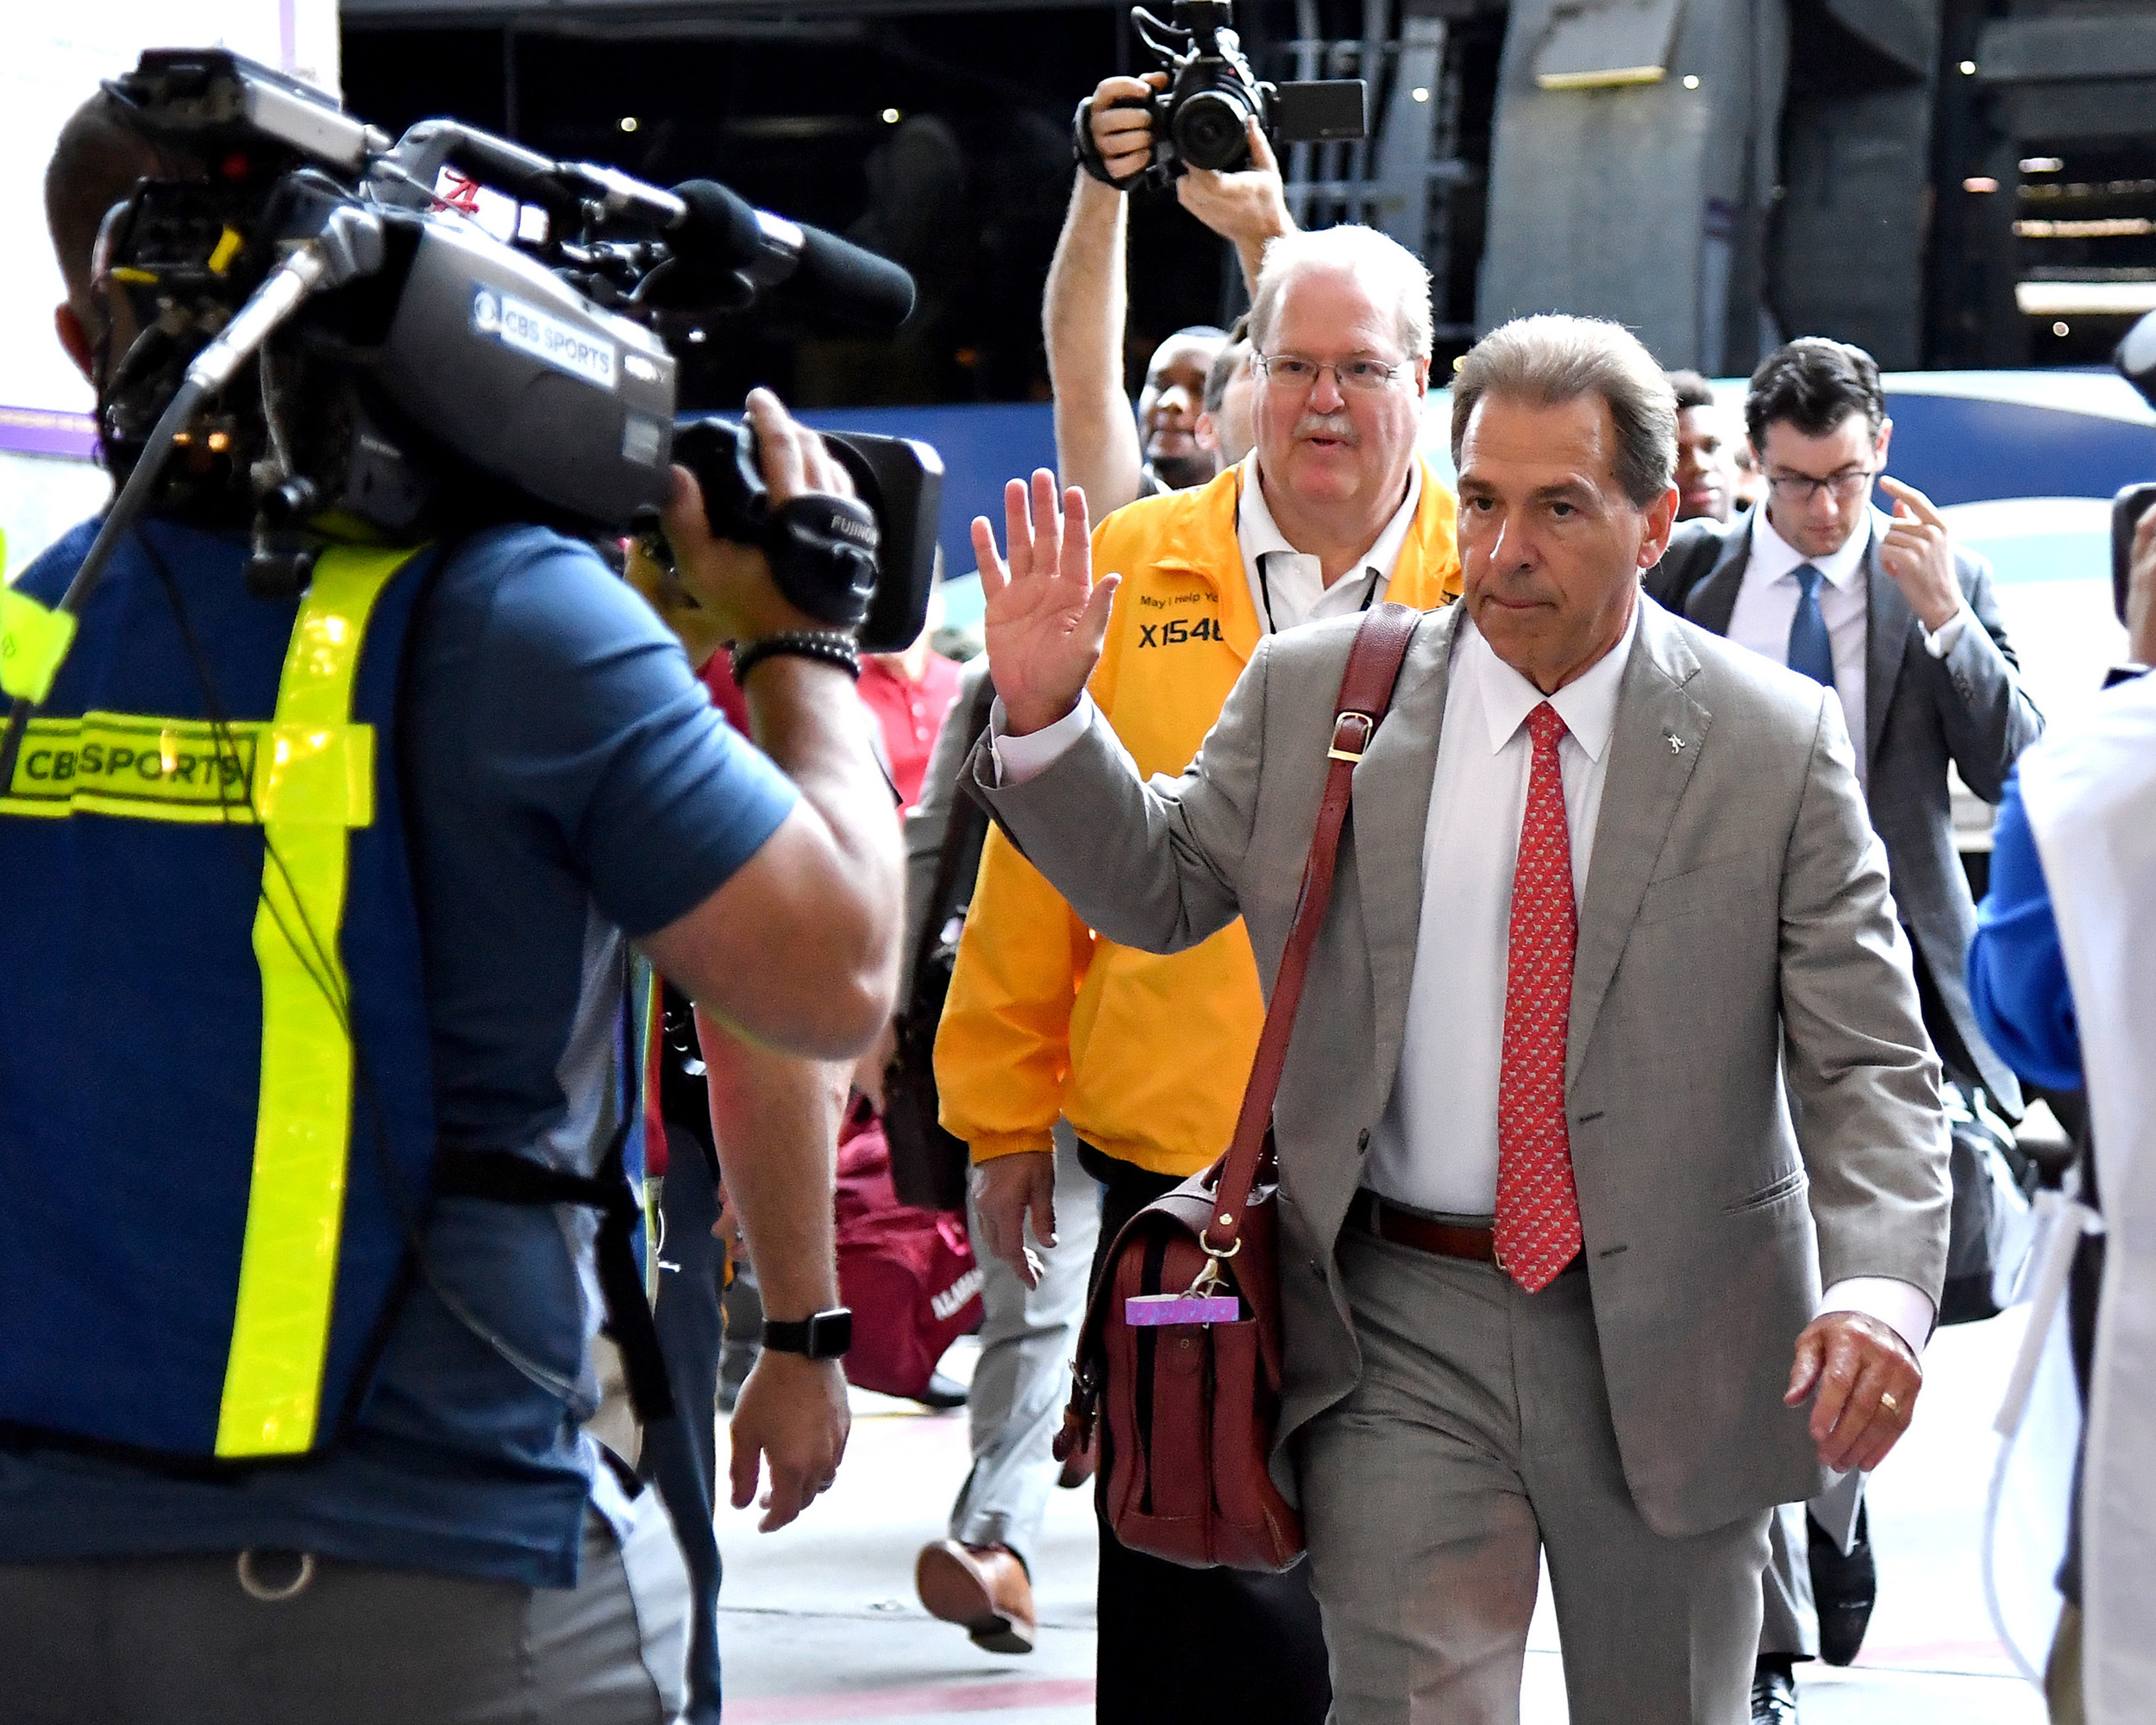 Alabama Crimson Tide head coach Nick Saban waves to the crowd as he walks into Tiger Stadium prior to an NCAA football game against the LSU Tigers Saturday, November 3, 2018, in Baton Rouge, La. (Photo by Lee Walls)